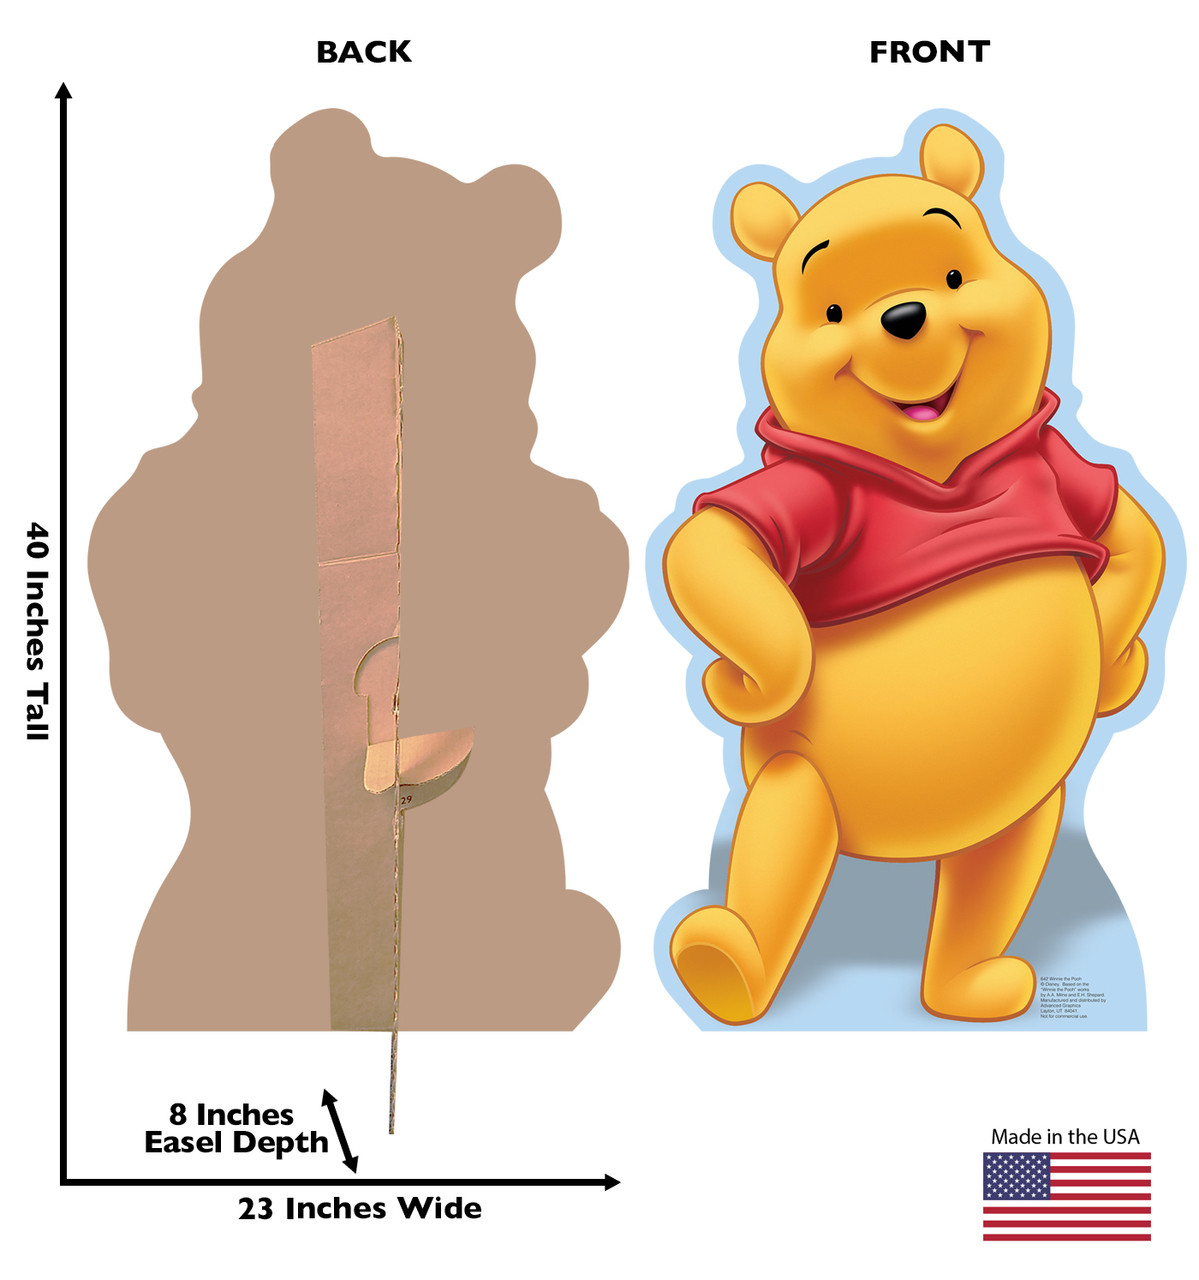 Life-size cardboard standee of Winnie the Pooh with front and back dimensions.